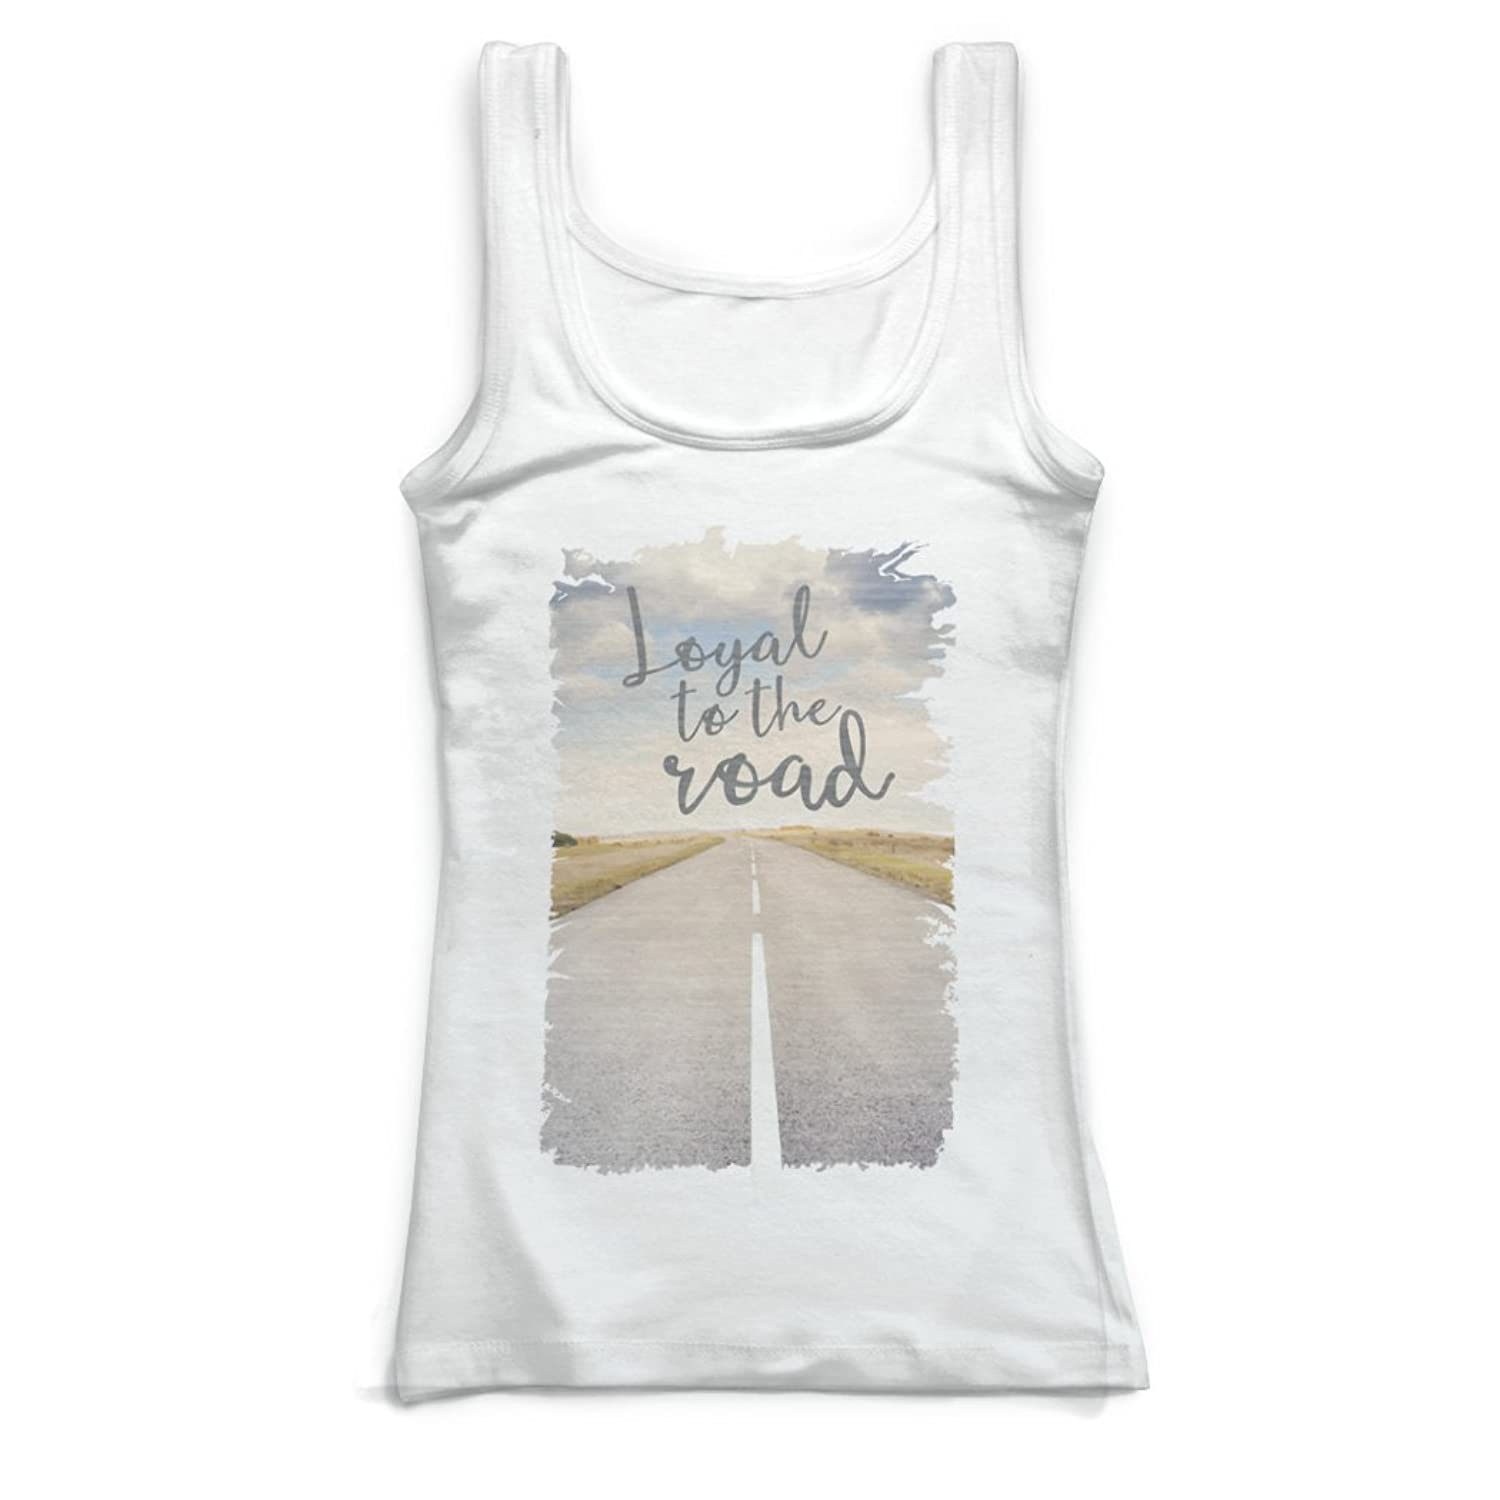 Gone For a Run Running Vintage Fitted Tank Top - Loyal To The Road